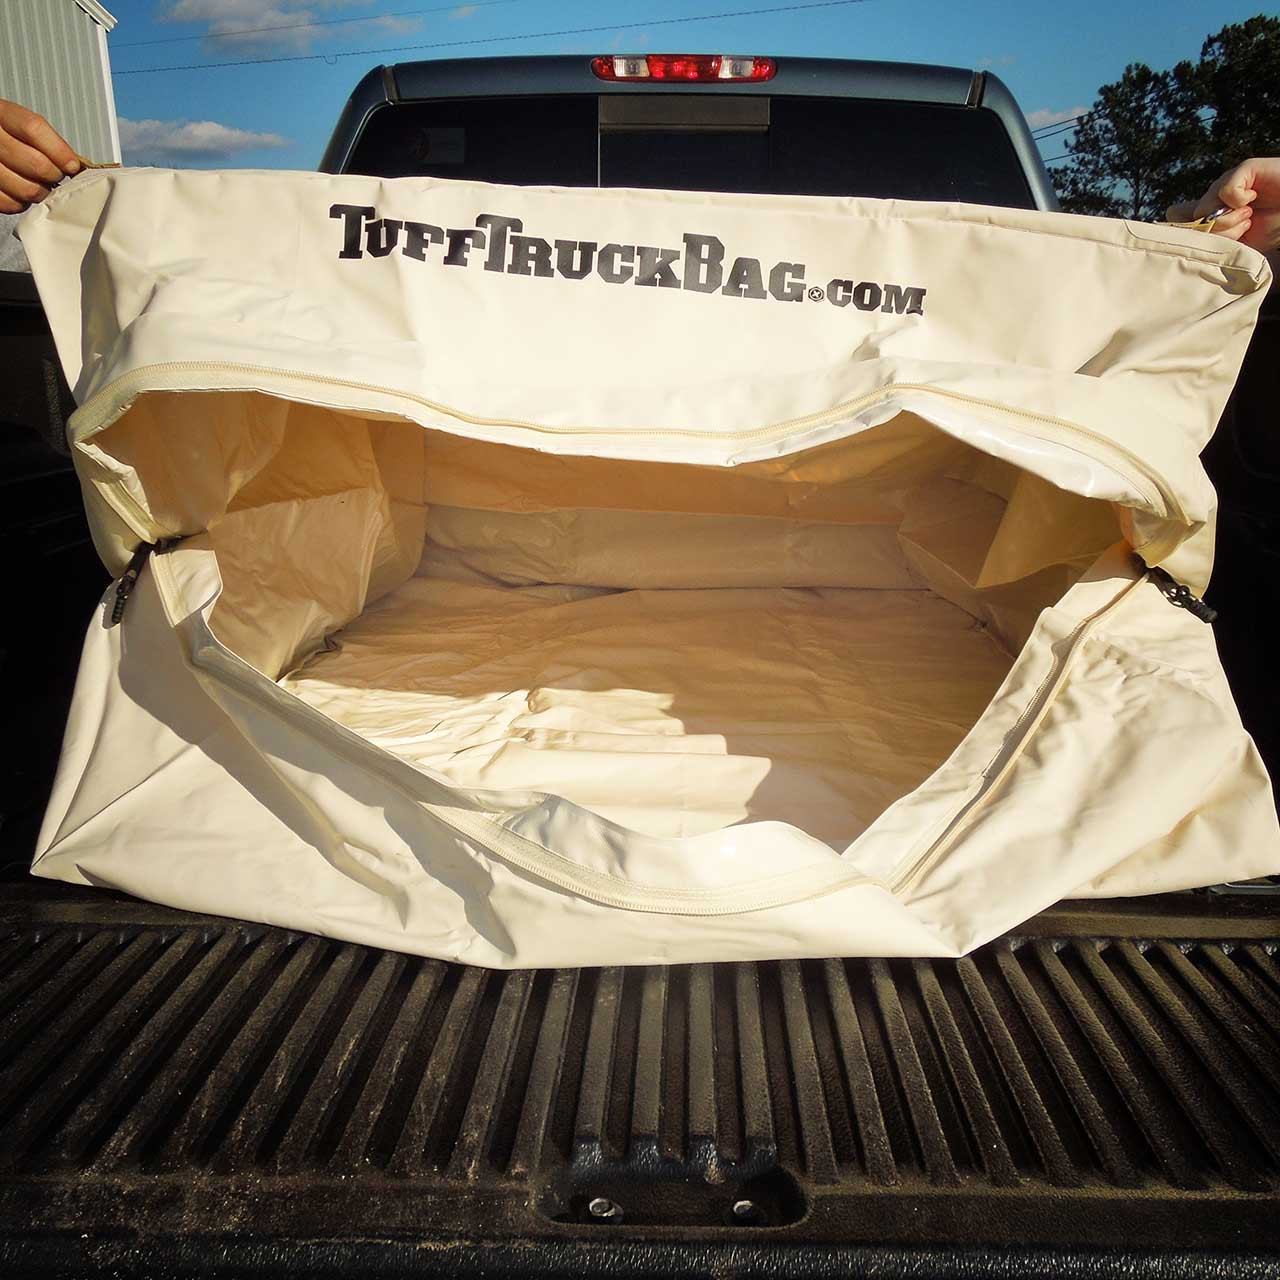 Back view of a waterproof Tuff Truck Bag with no cargo or luggage inside to see how much space is available to load into the bag.